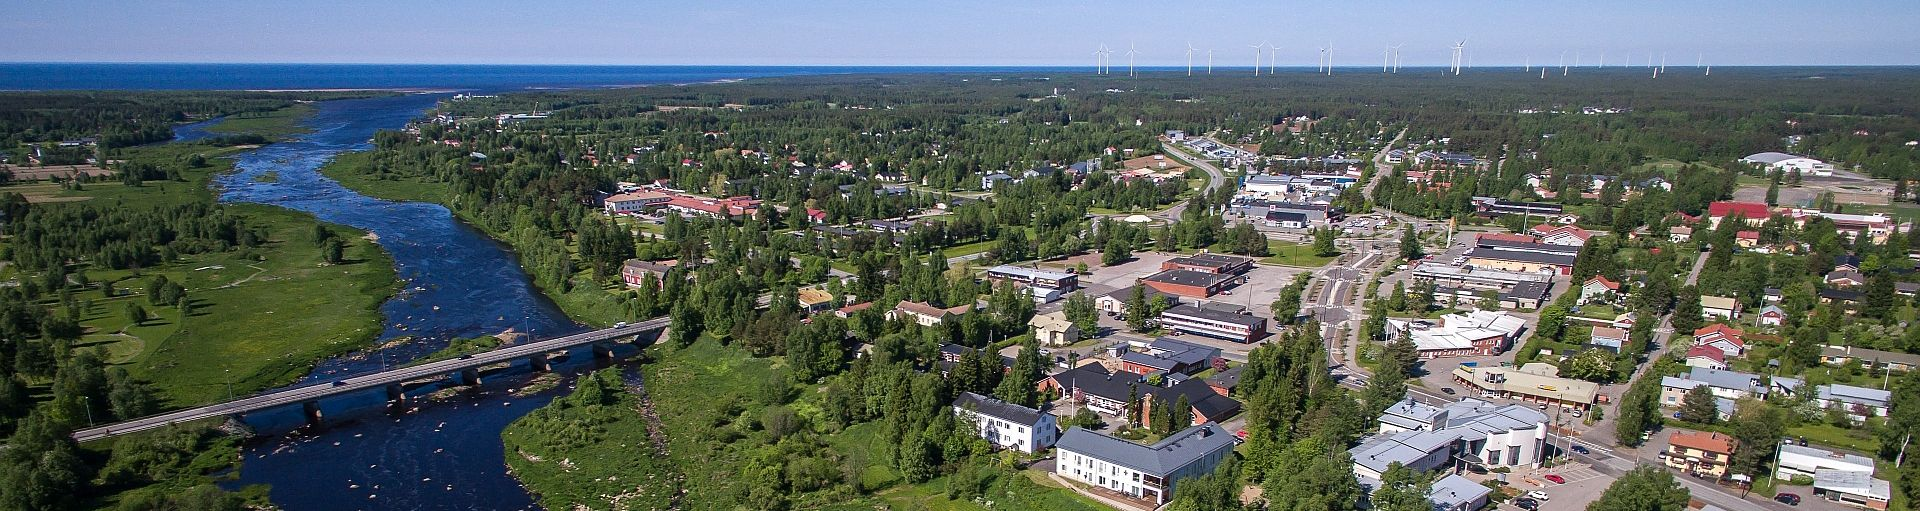 Kalajoki river and village photographed from the air.